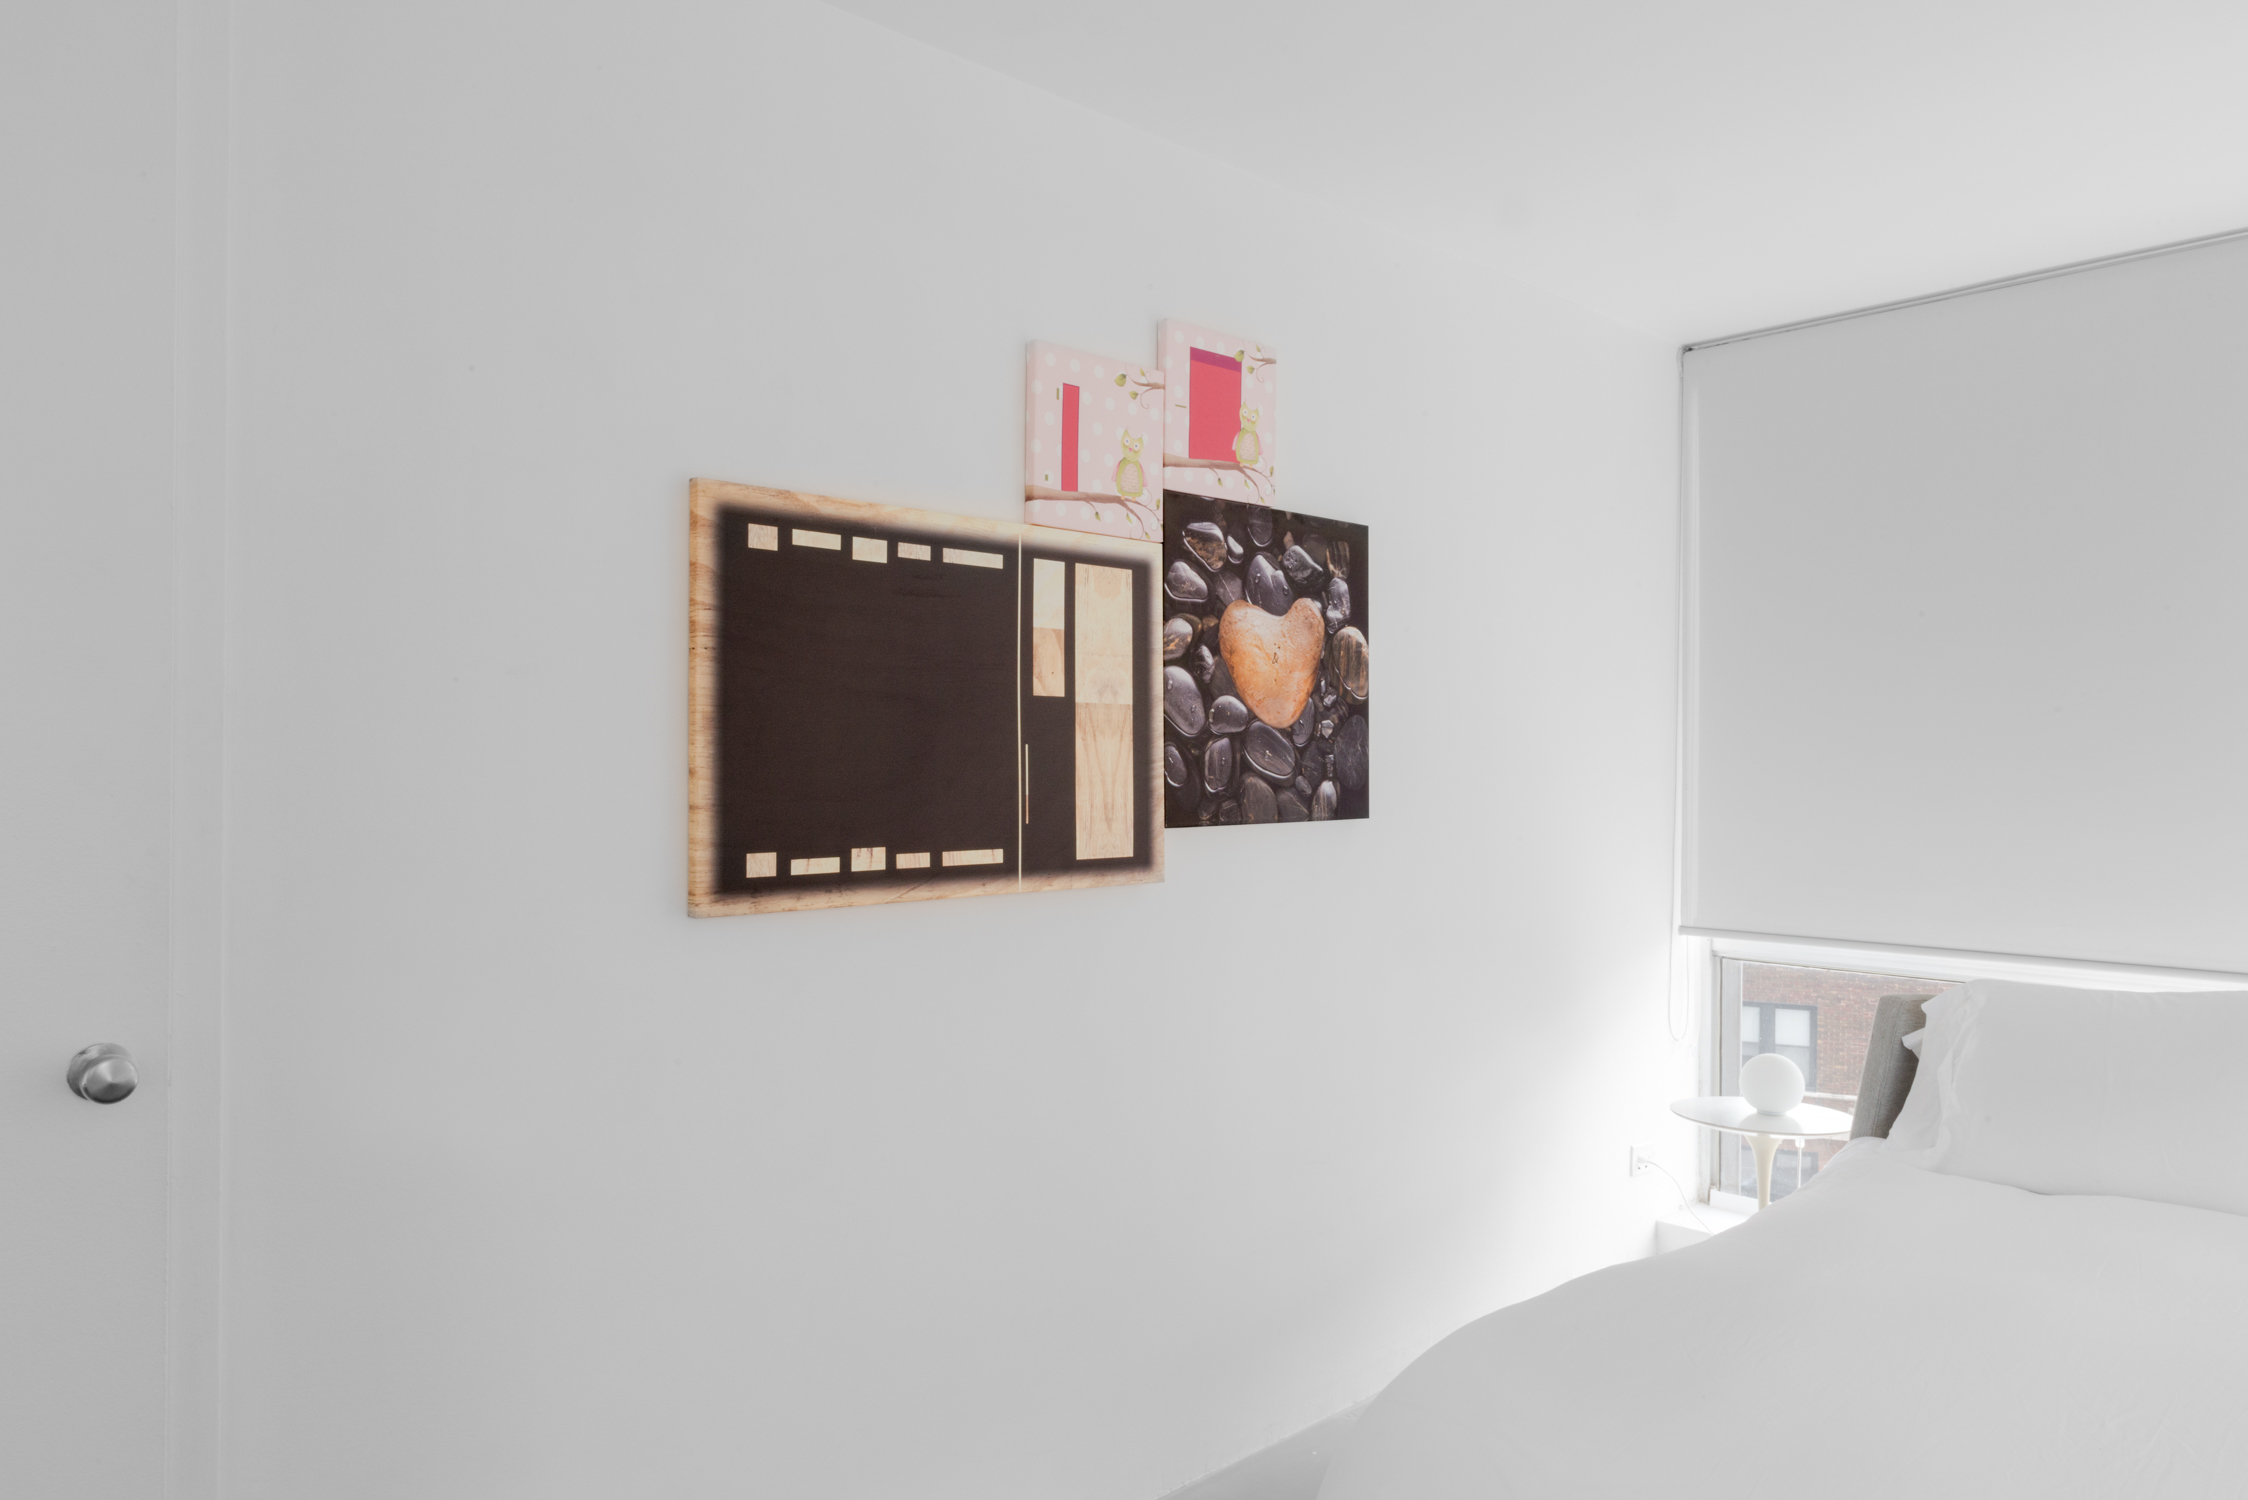 Chadwick Rantanen 2016 Shane Campbell Gallery, Lincoln Park Installation view